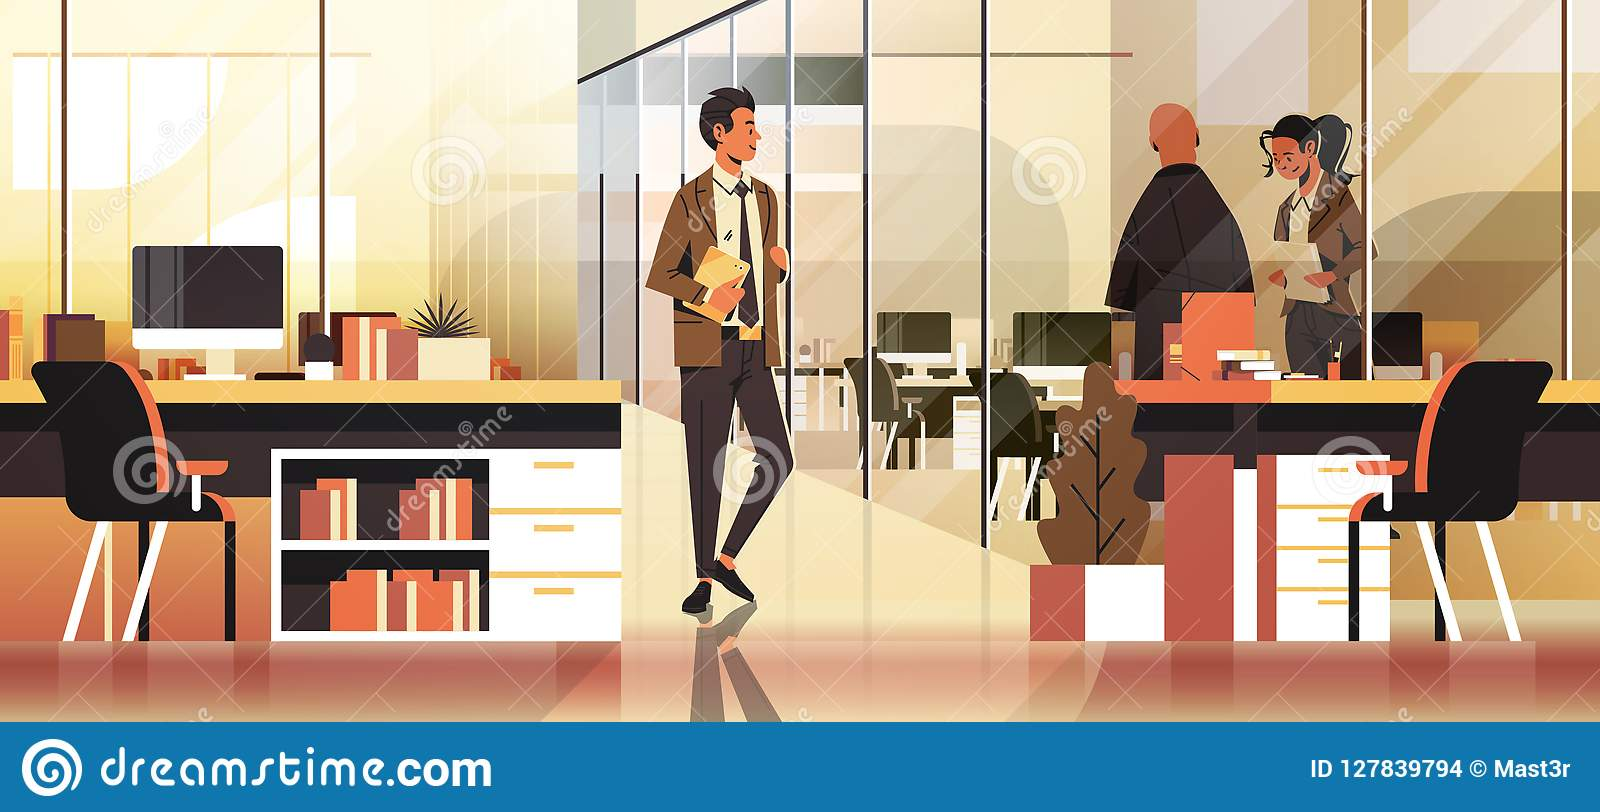 Business people communicating concept modern coworking office interior creative workplace male female cartoon character